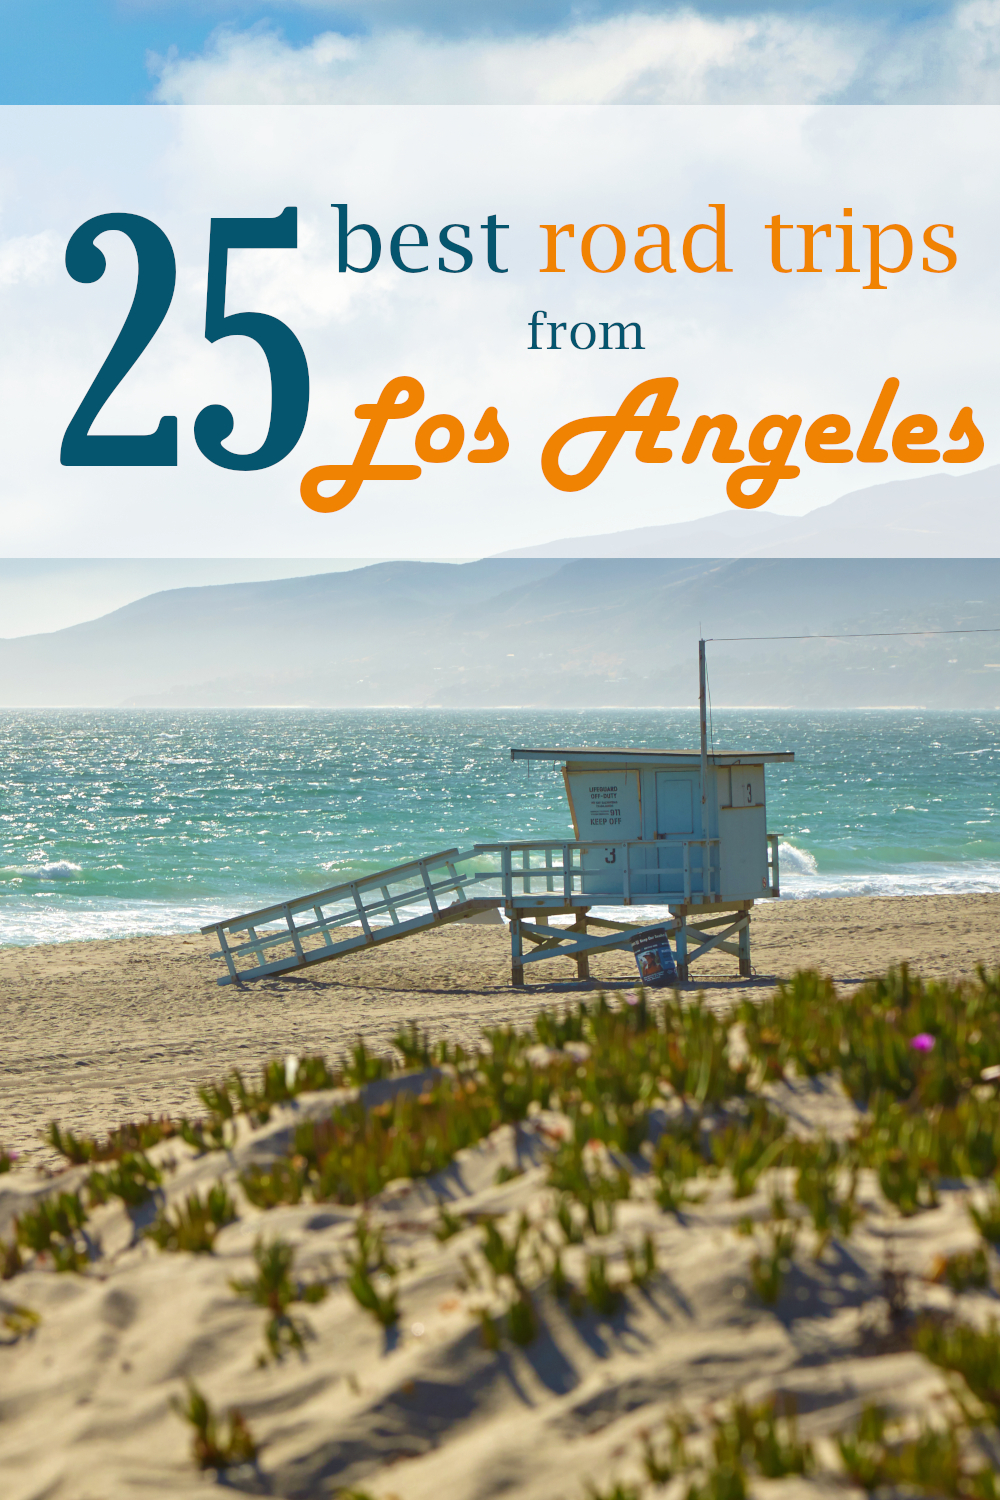 25 best road trips from Los Angeles from day trips to week long drives